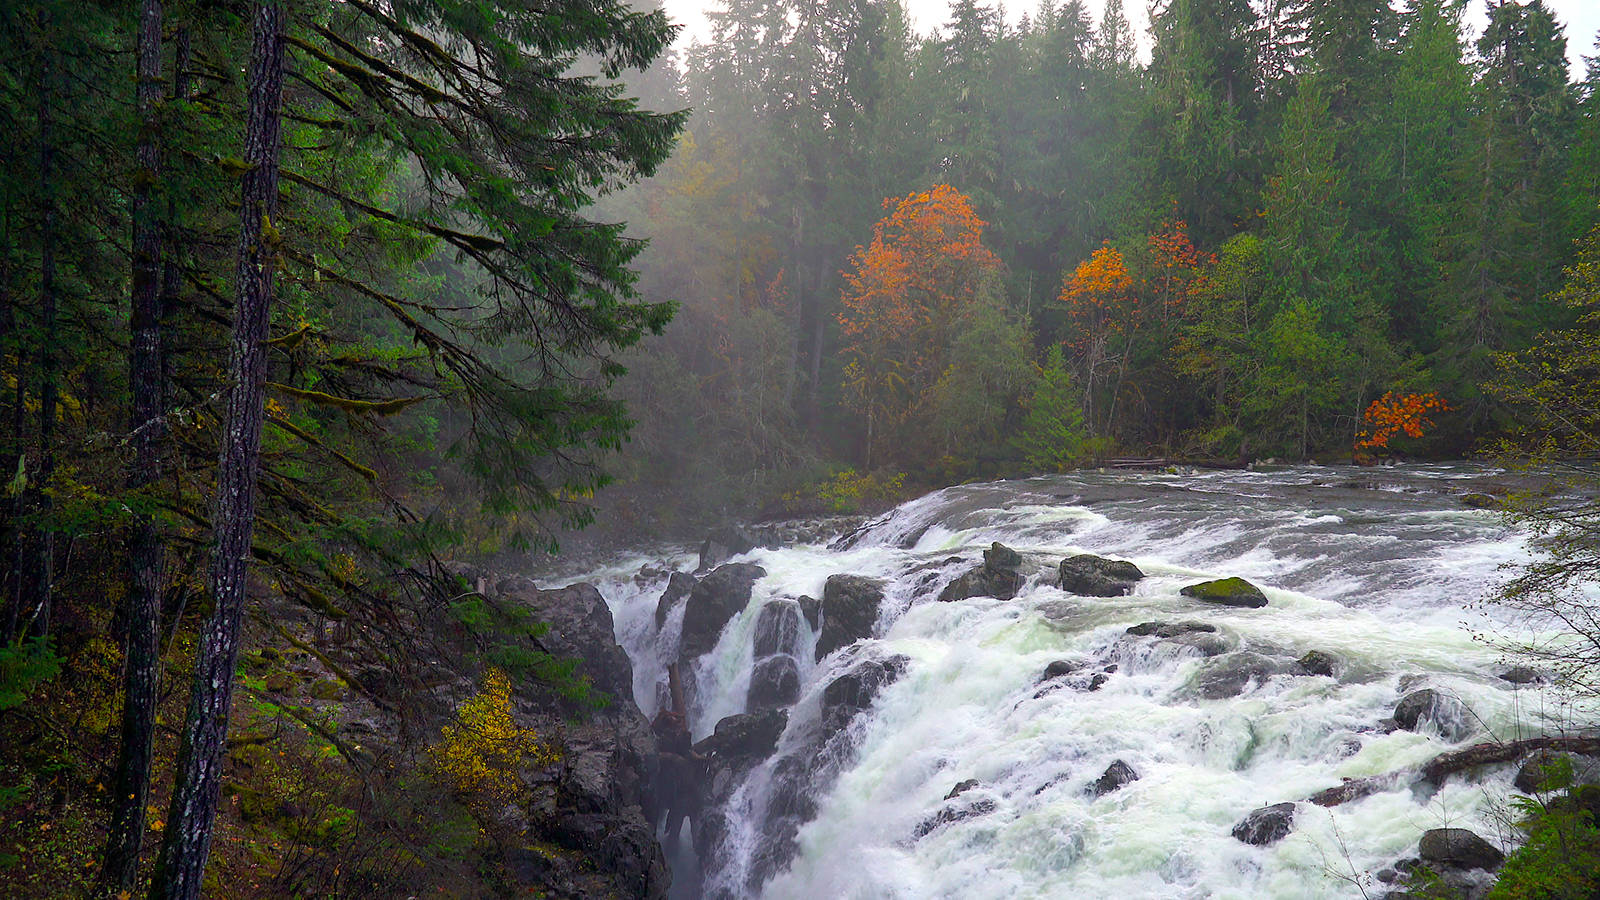 """Englishman River Falls, located in its namesake provincial park, is one of the locations in the """"Amazing Places"""" Geotour on Vancouver Island. (Photo courtesy of Mount Arrowsmith Biosphere Region)"""